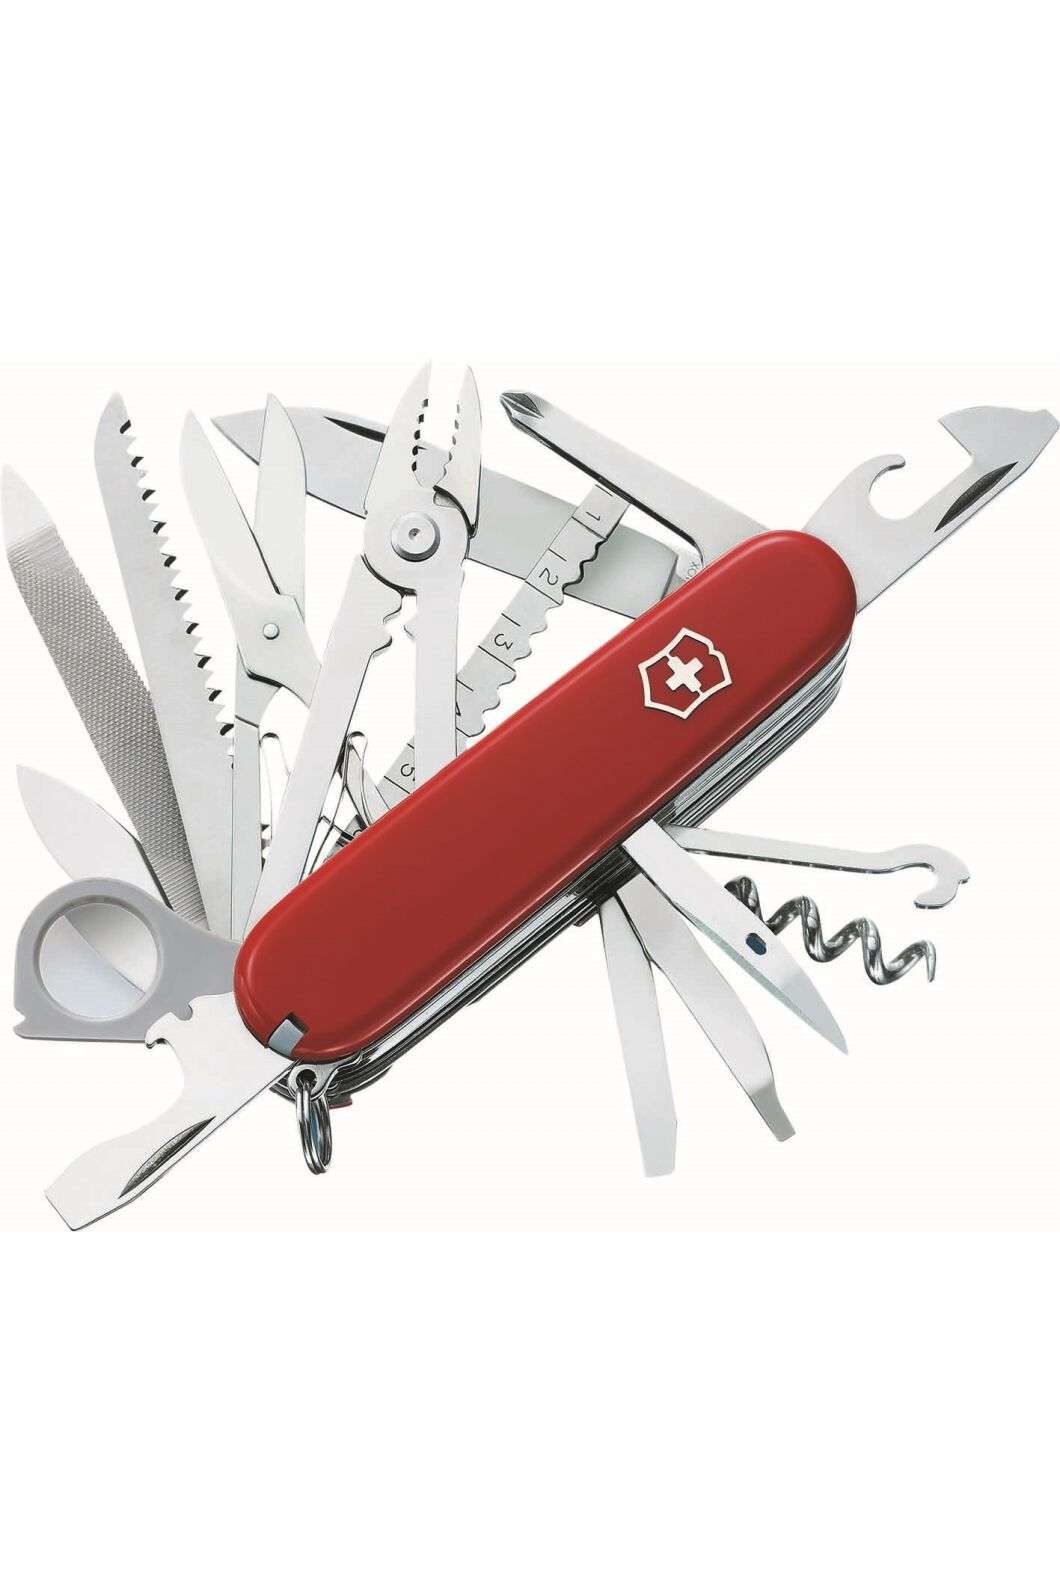 Victorinox Swiss Champ Multi-Tool, None, hi-res